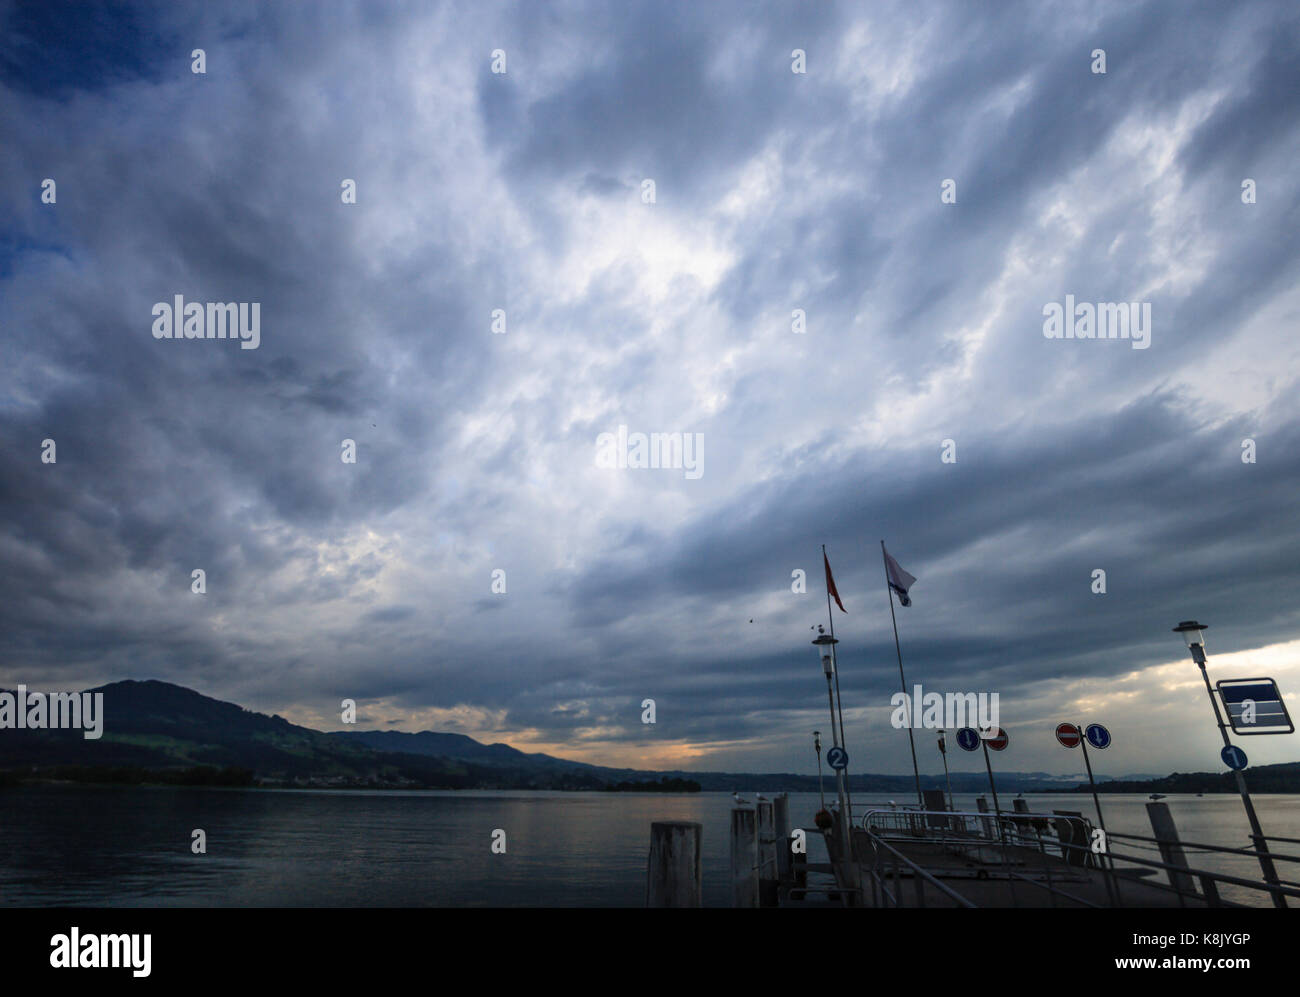 Pier before the rainstorm on the Lake Zurich, Rapperswil, Switzerland, Europe. - Stock Image